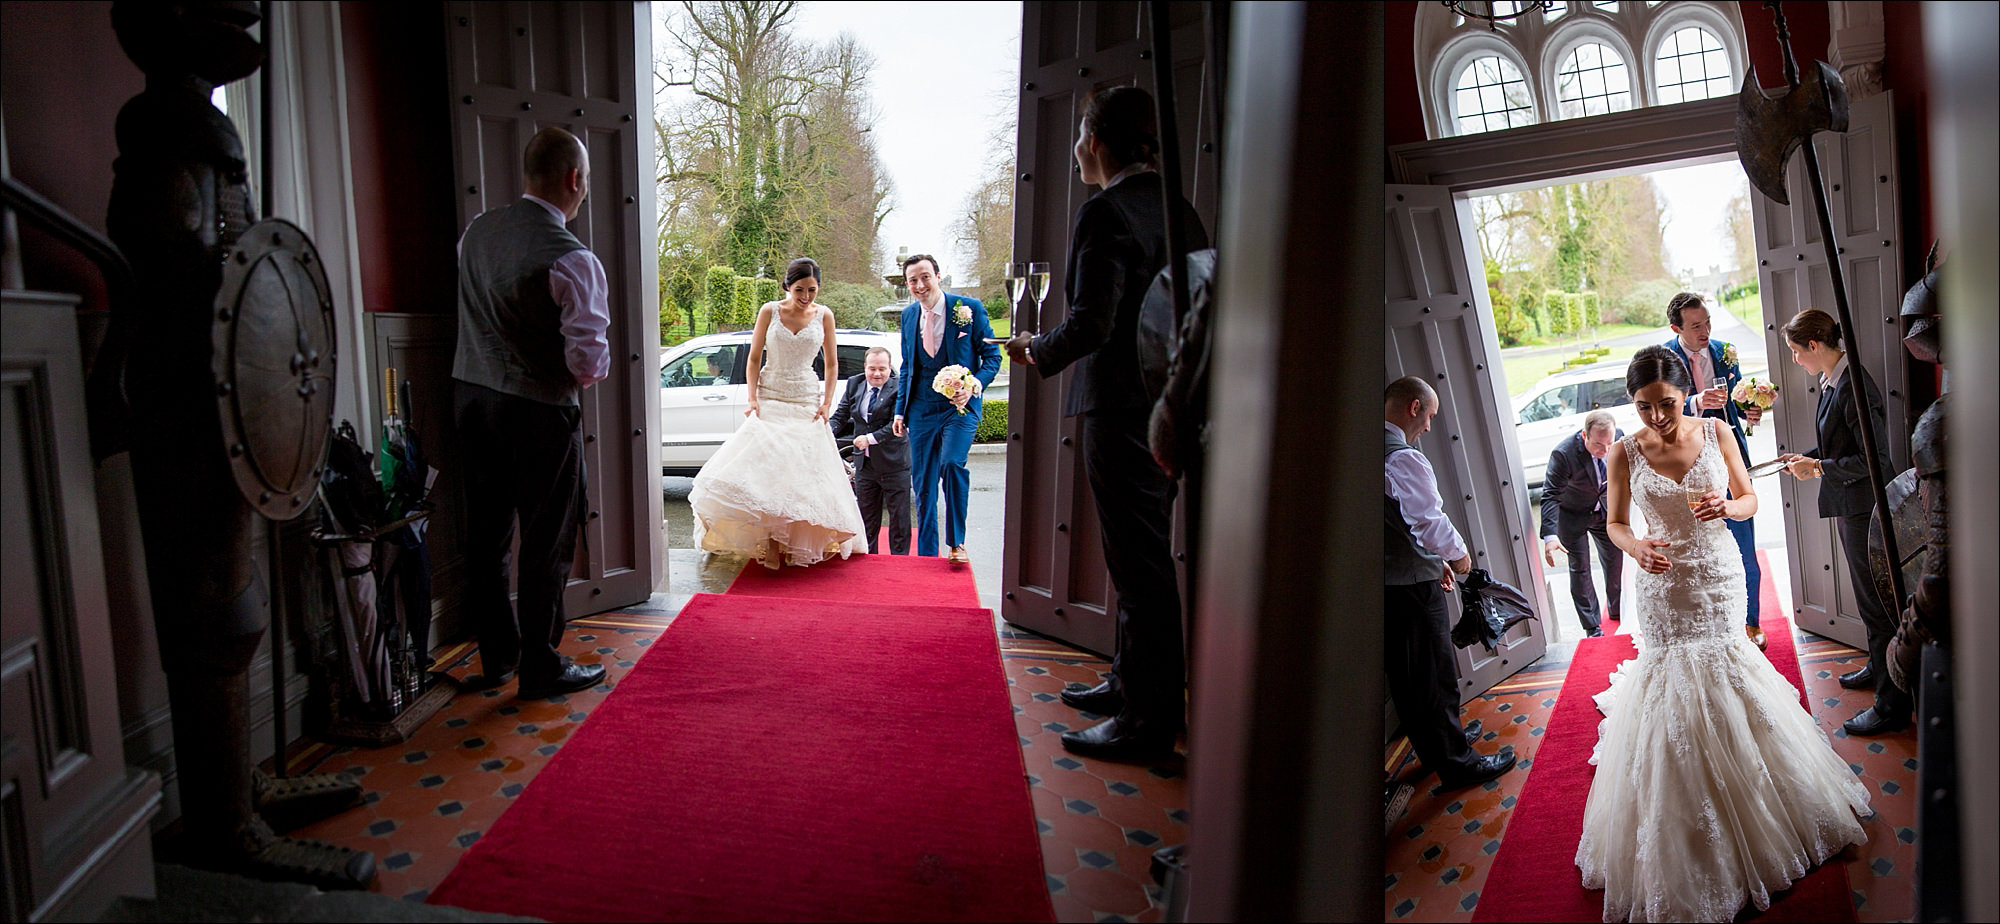 dublin wedding photographer david duignan photography bellingham castle weddings Ireland 0048